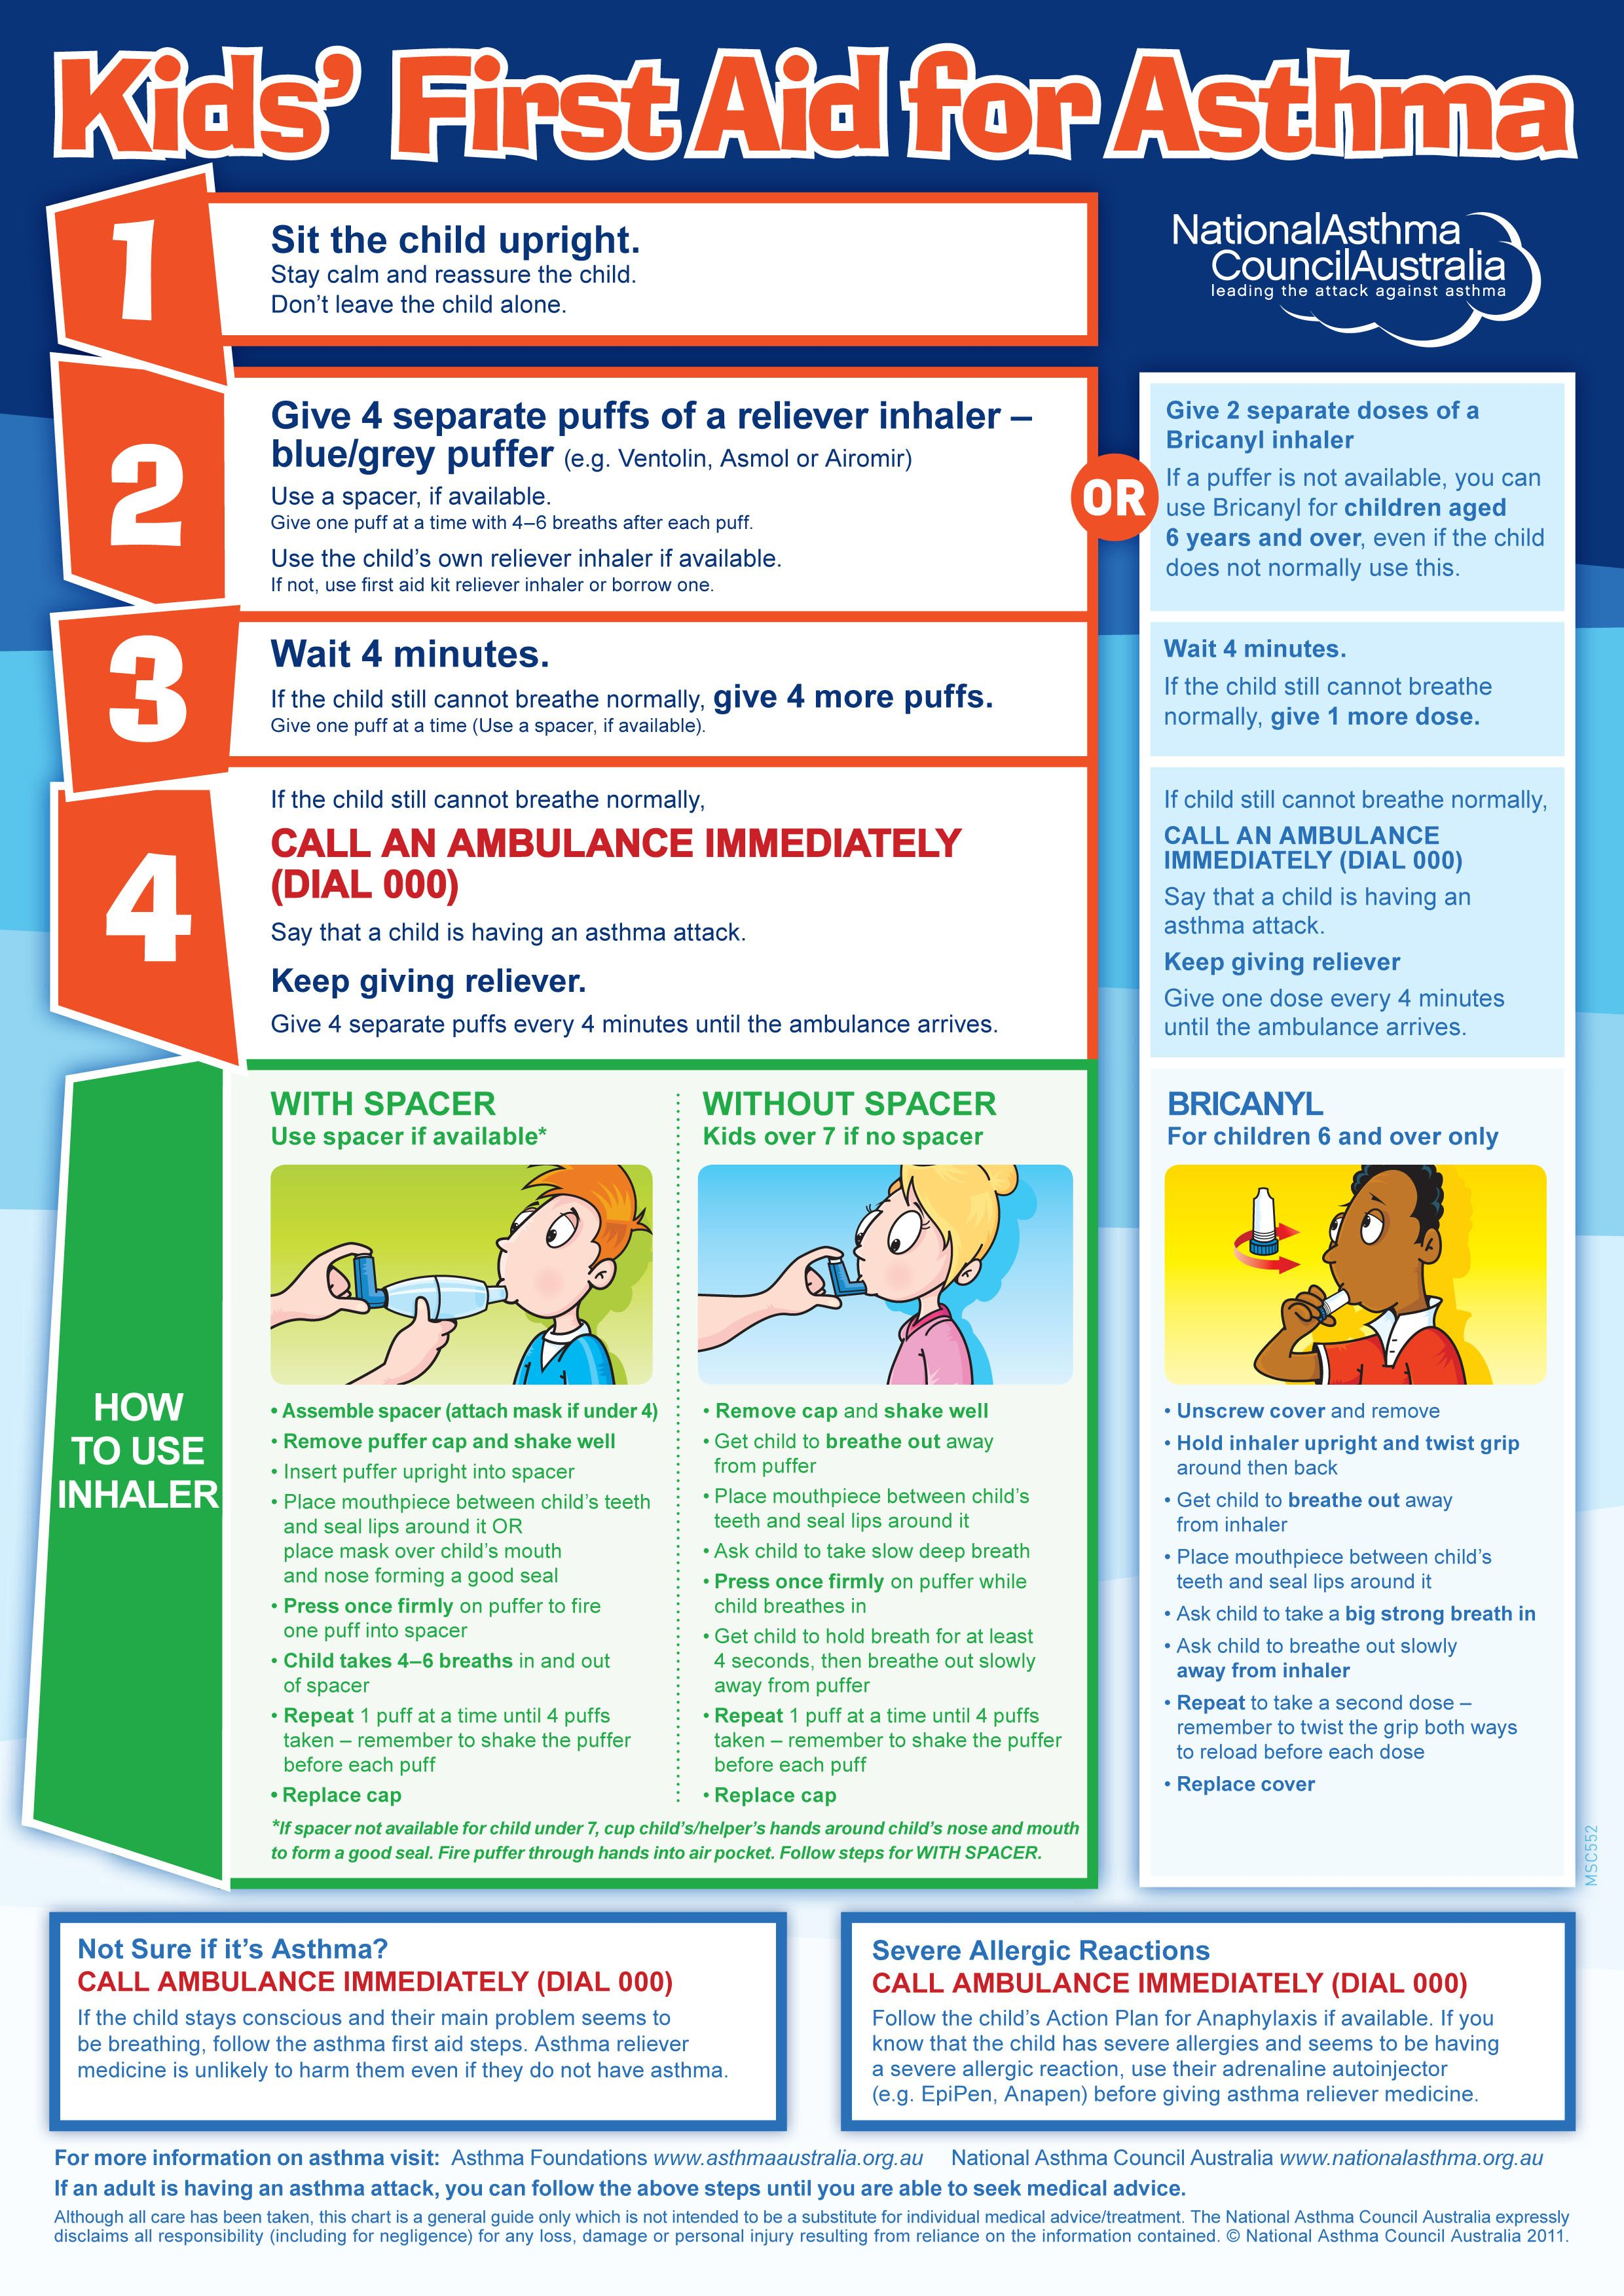 Kids First Aid For An Asthma Attack National Asthma